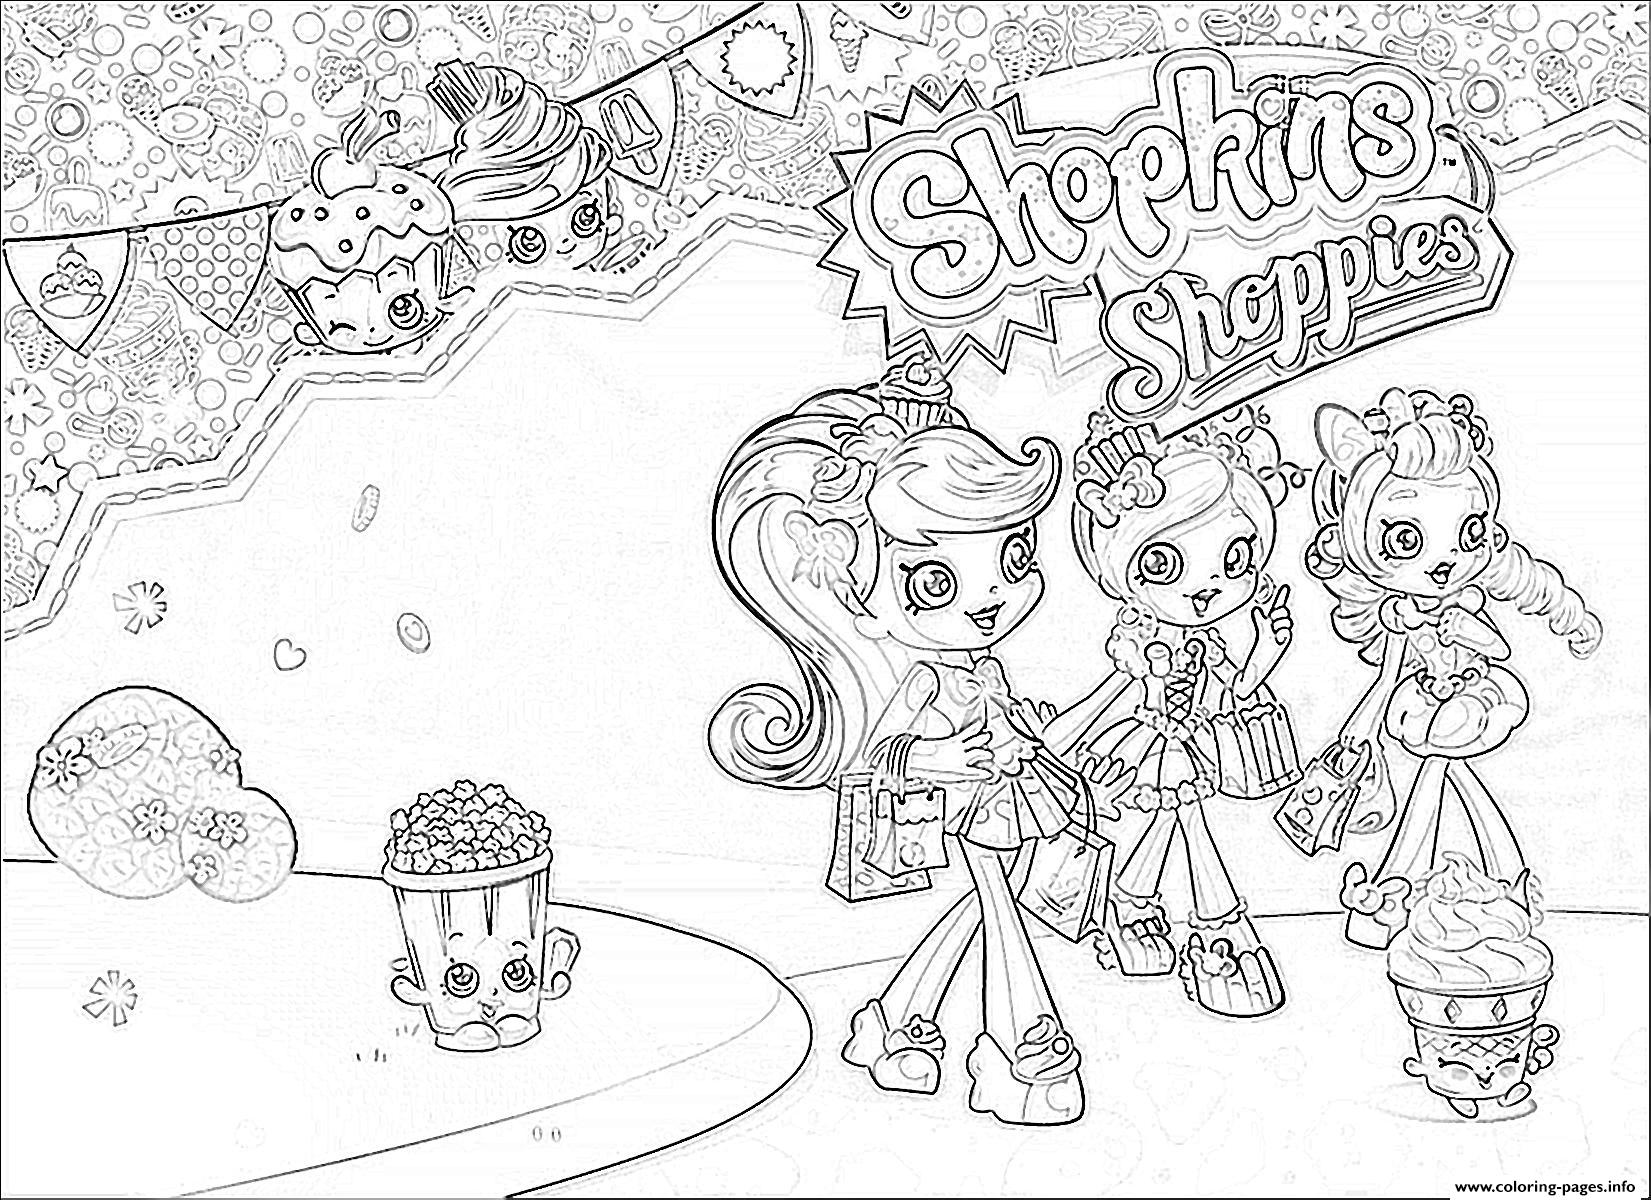 Shopkins Shoppies Girls Coloring Pages Print Download 391 Prints